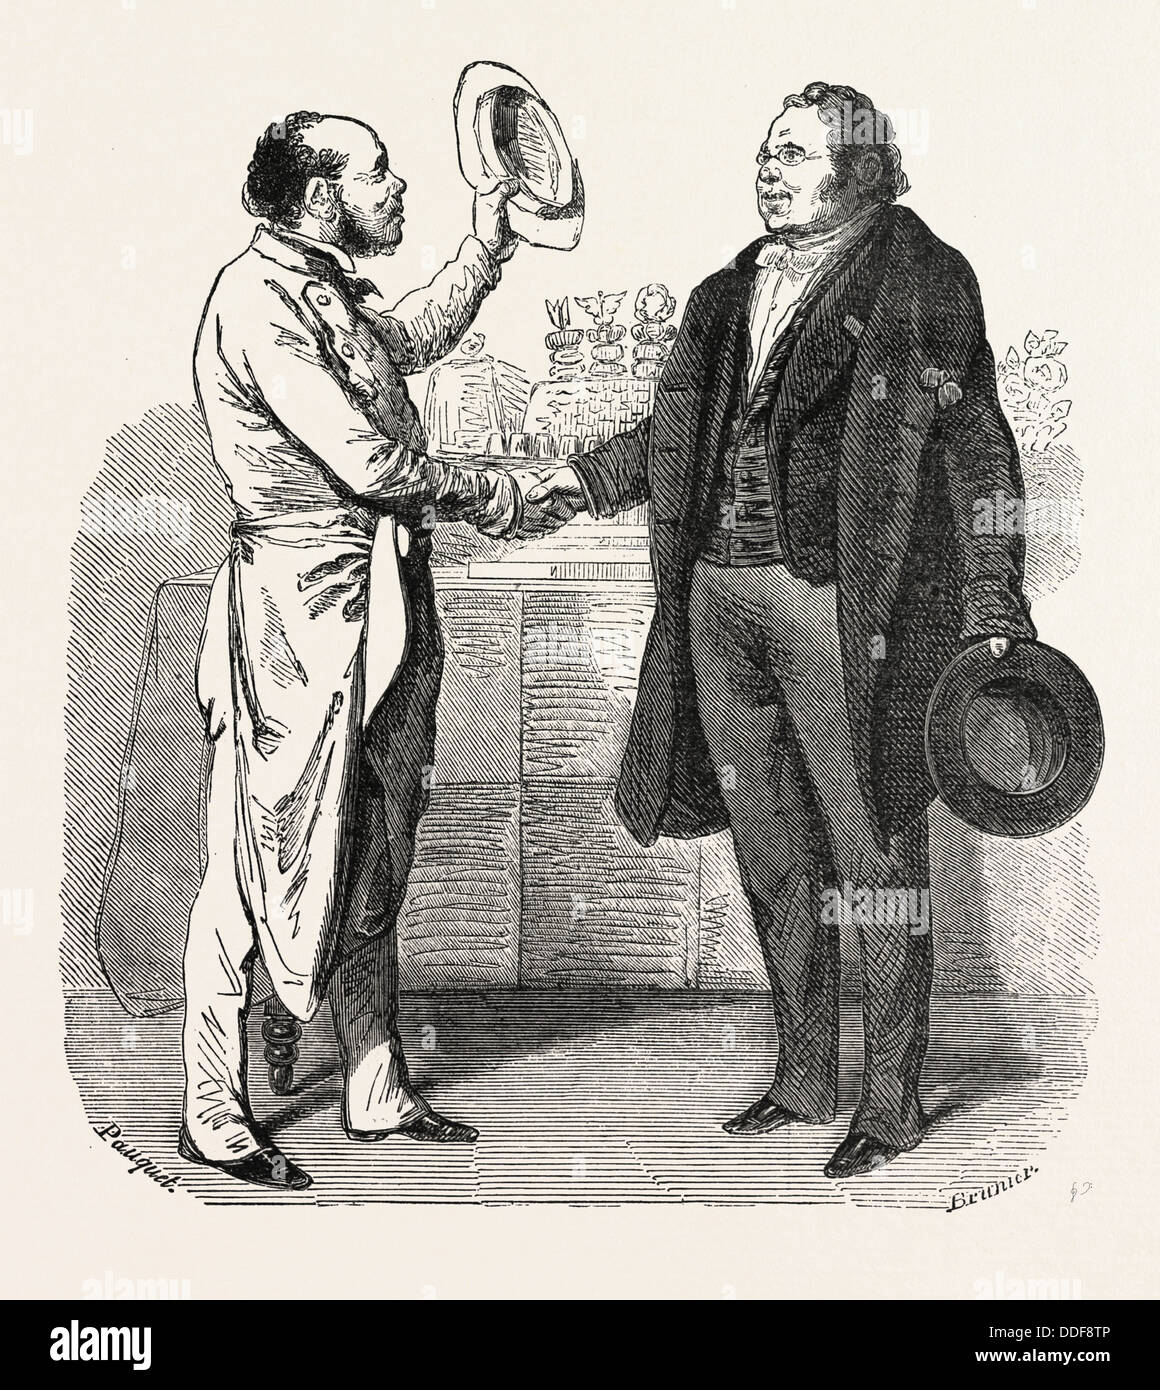 The cook and the doctor. Fable. engraving 1855 - Stock Image